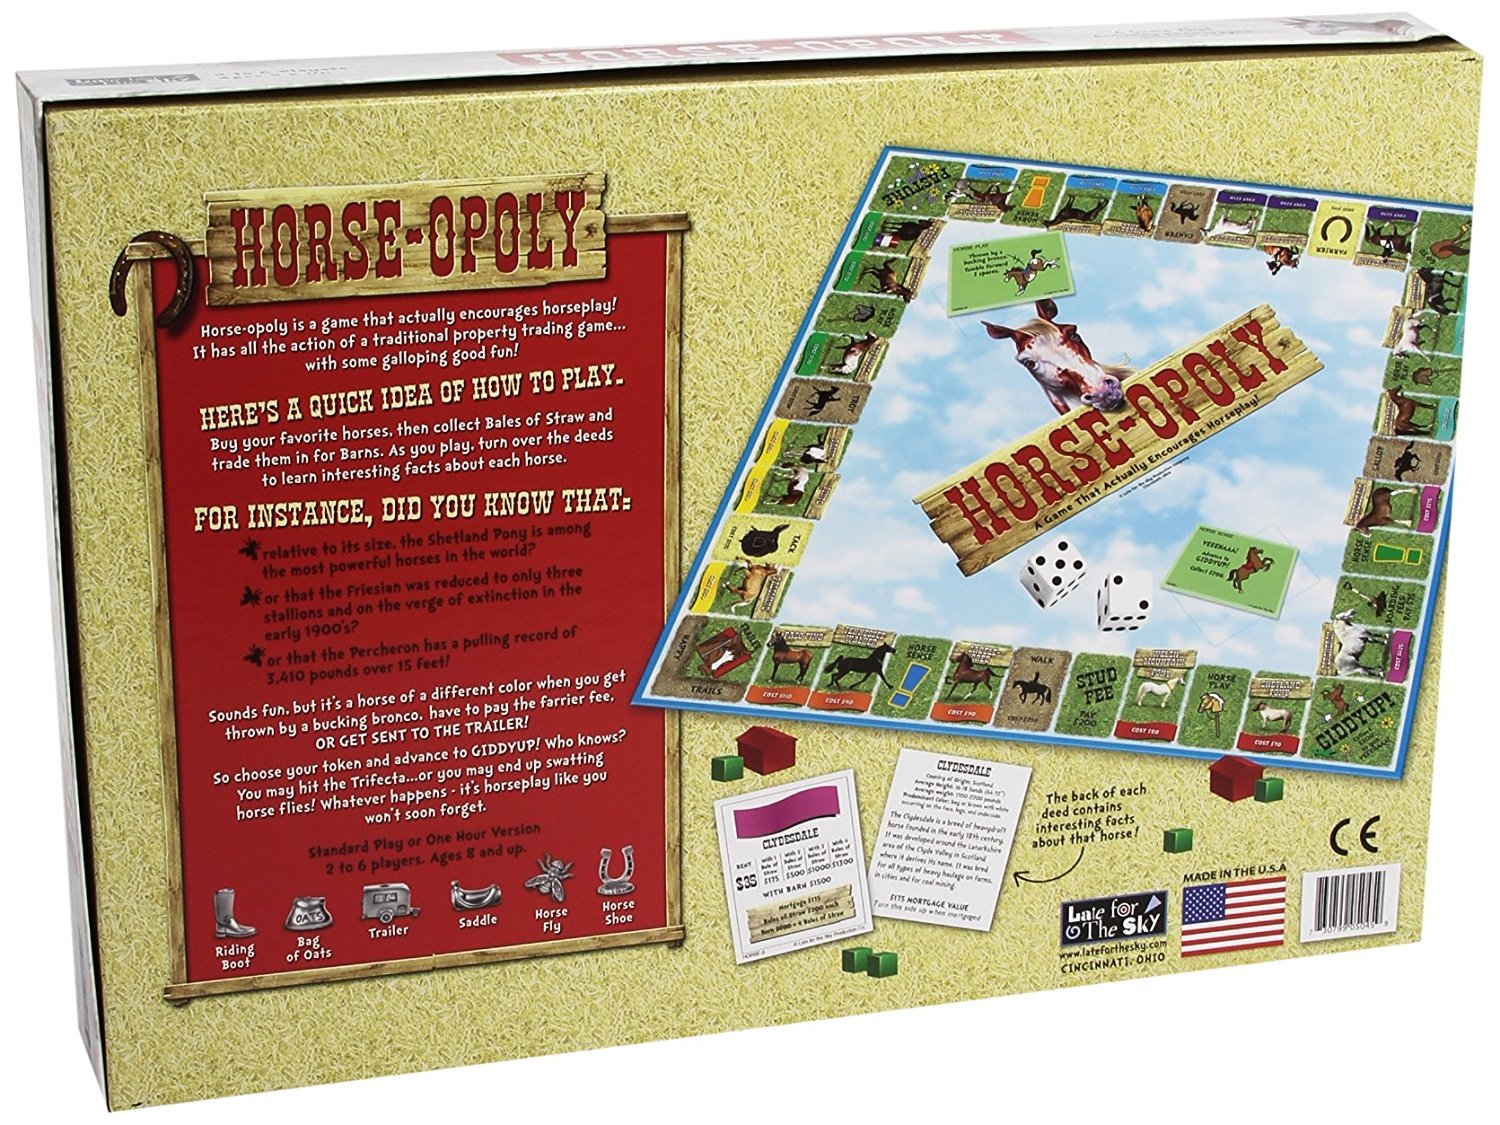 Horse-Opoly Monopoly Board Game